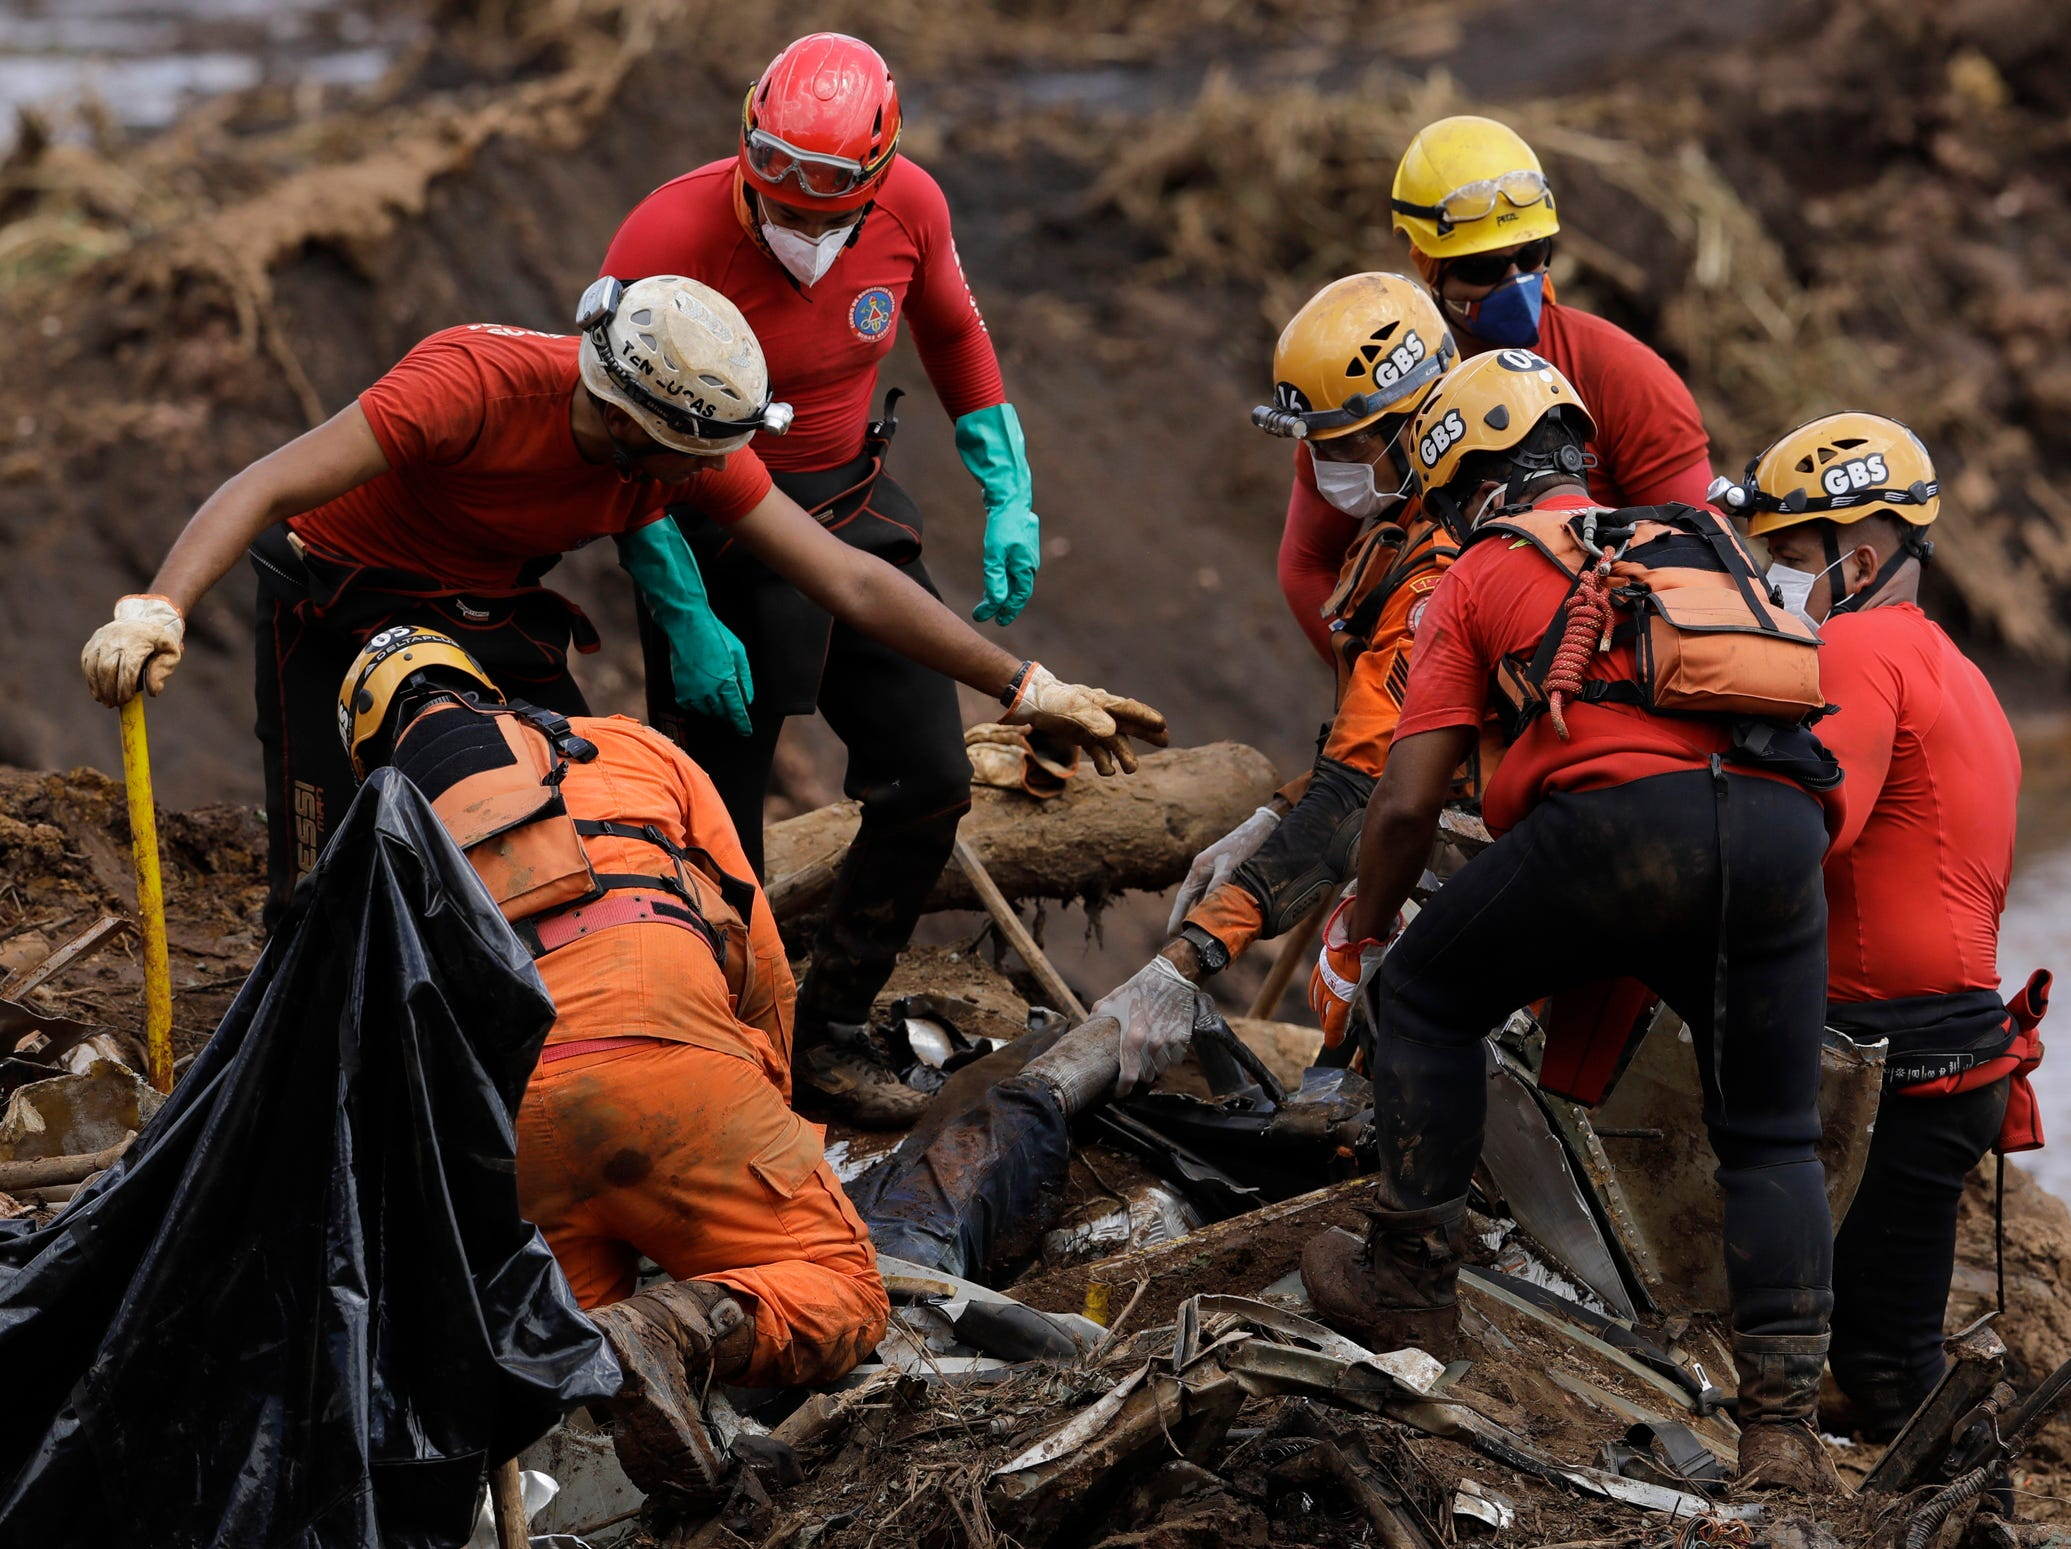 Firefighters pull a body from the mud days after a dam collapse in Brumadinho, Brazil, Monday, Jan. 28, 2019. The dam collapse buried mine buildings and surrounding neighborhoods with iron ore waste.